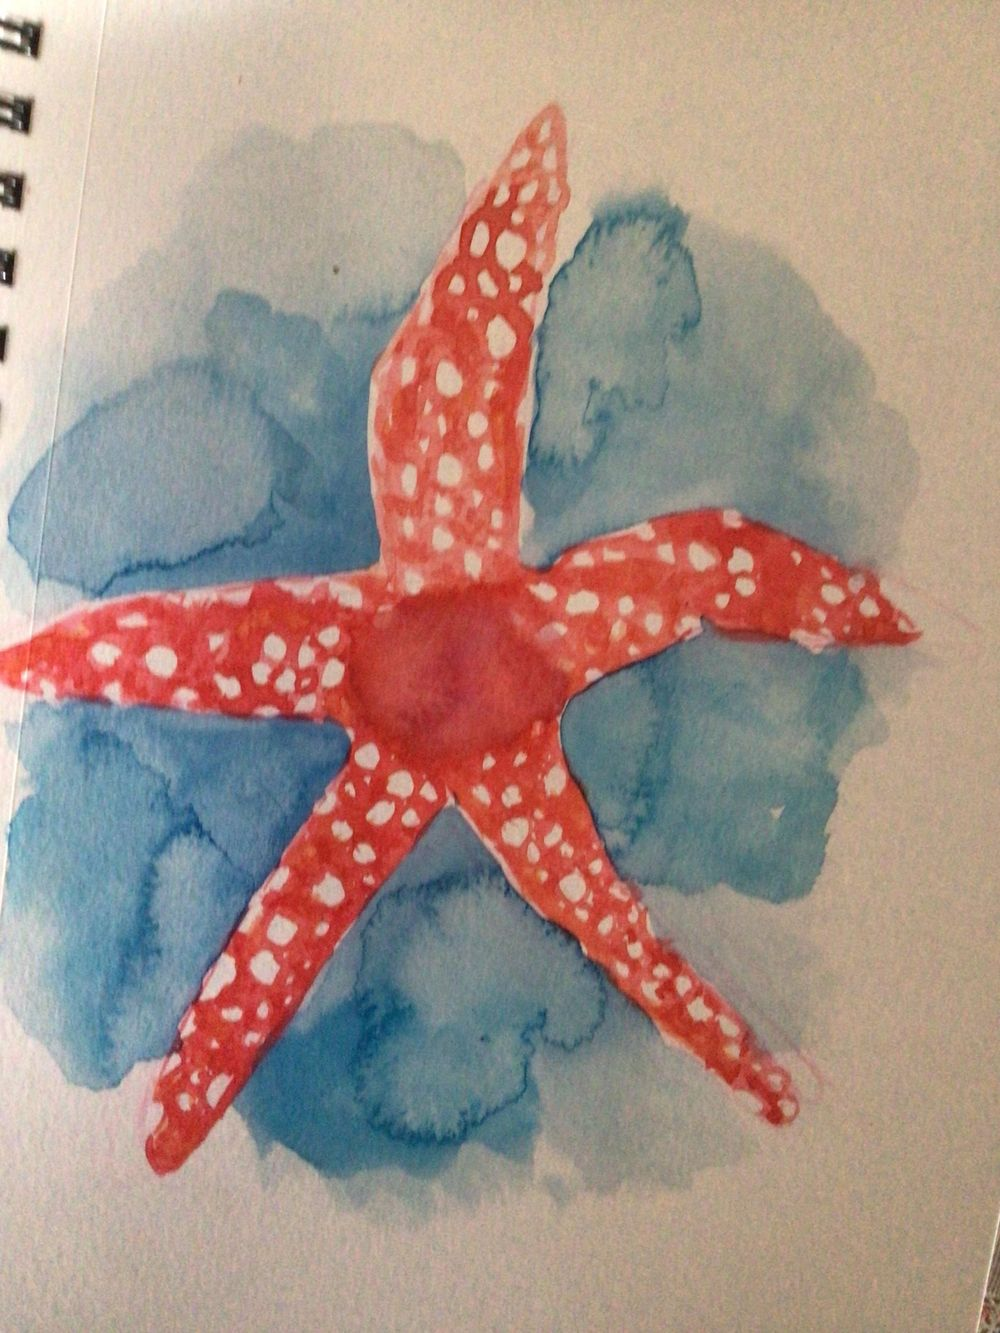 Watercolors - image 3 - student project